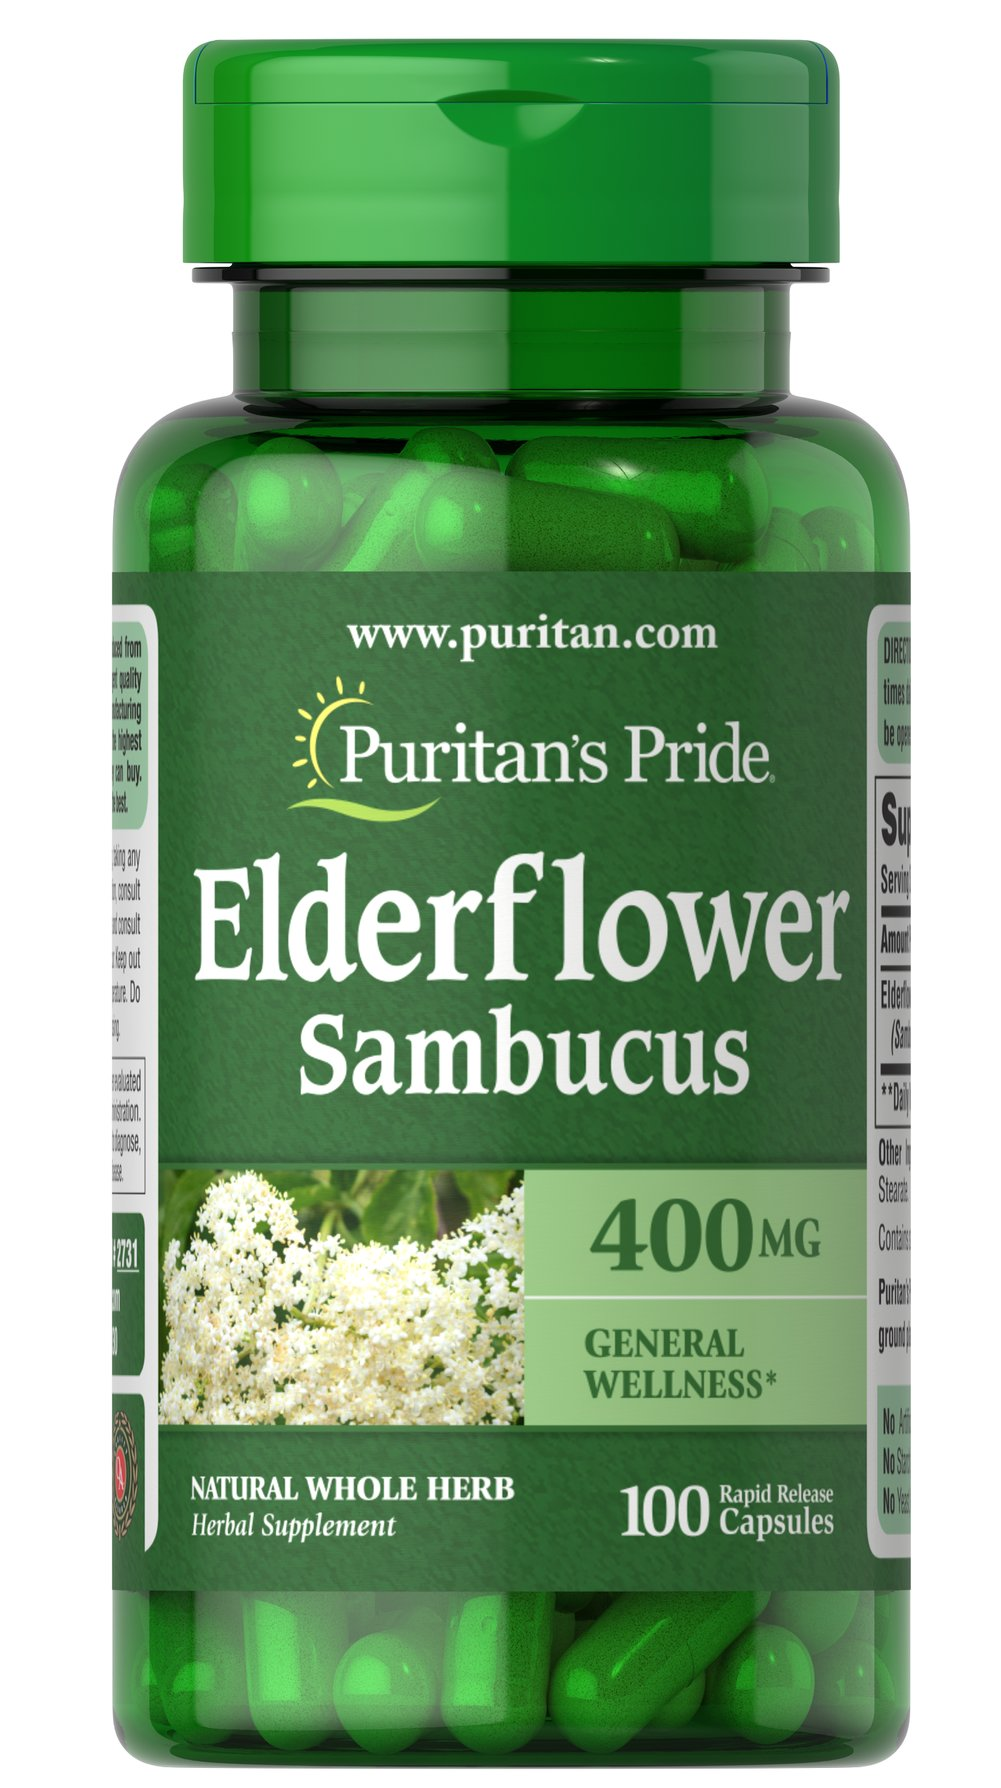 Elderflower Sambucus 400 mg